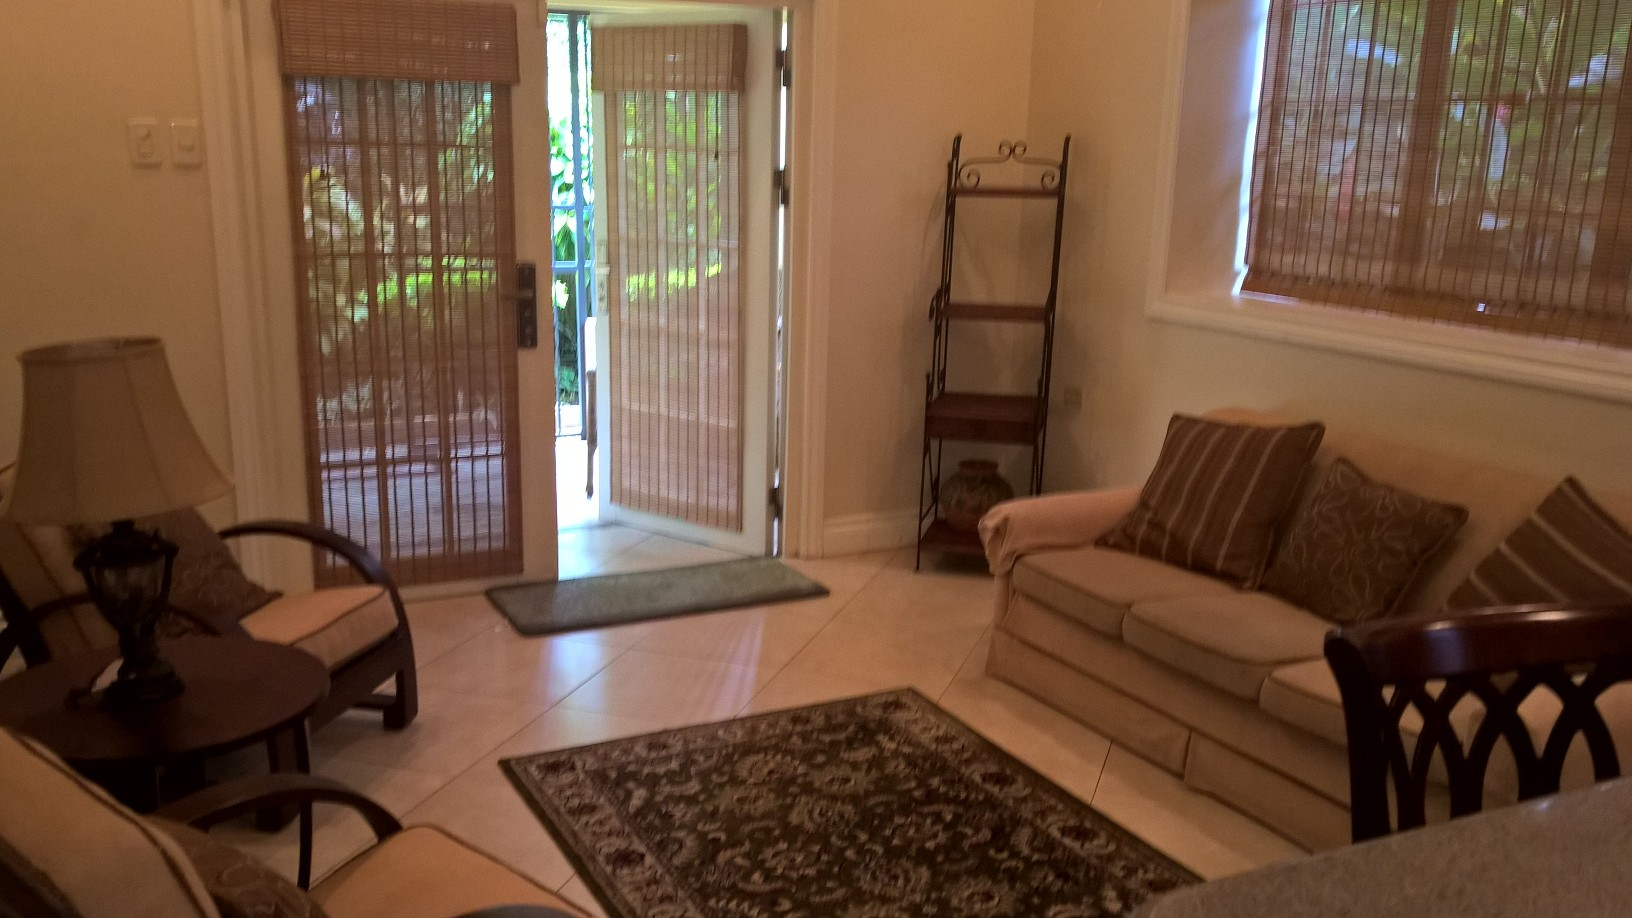 FULLY- FURNISHED, EXECUTIVE 1Br. APARTMENT FOR RENT AT VALSAYN NORTH